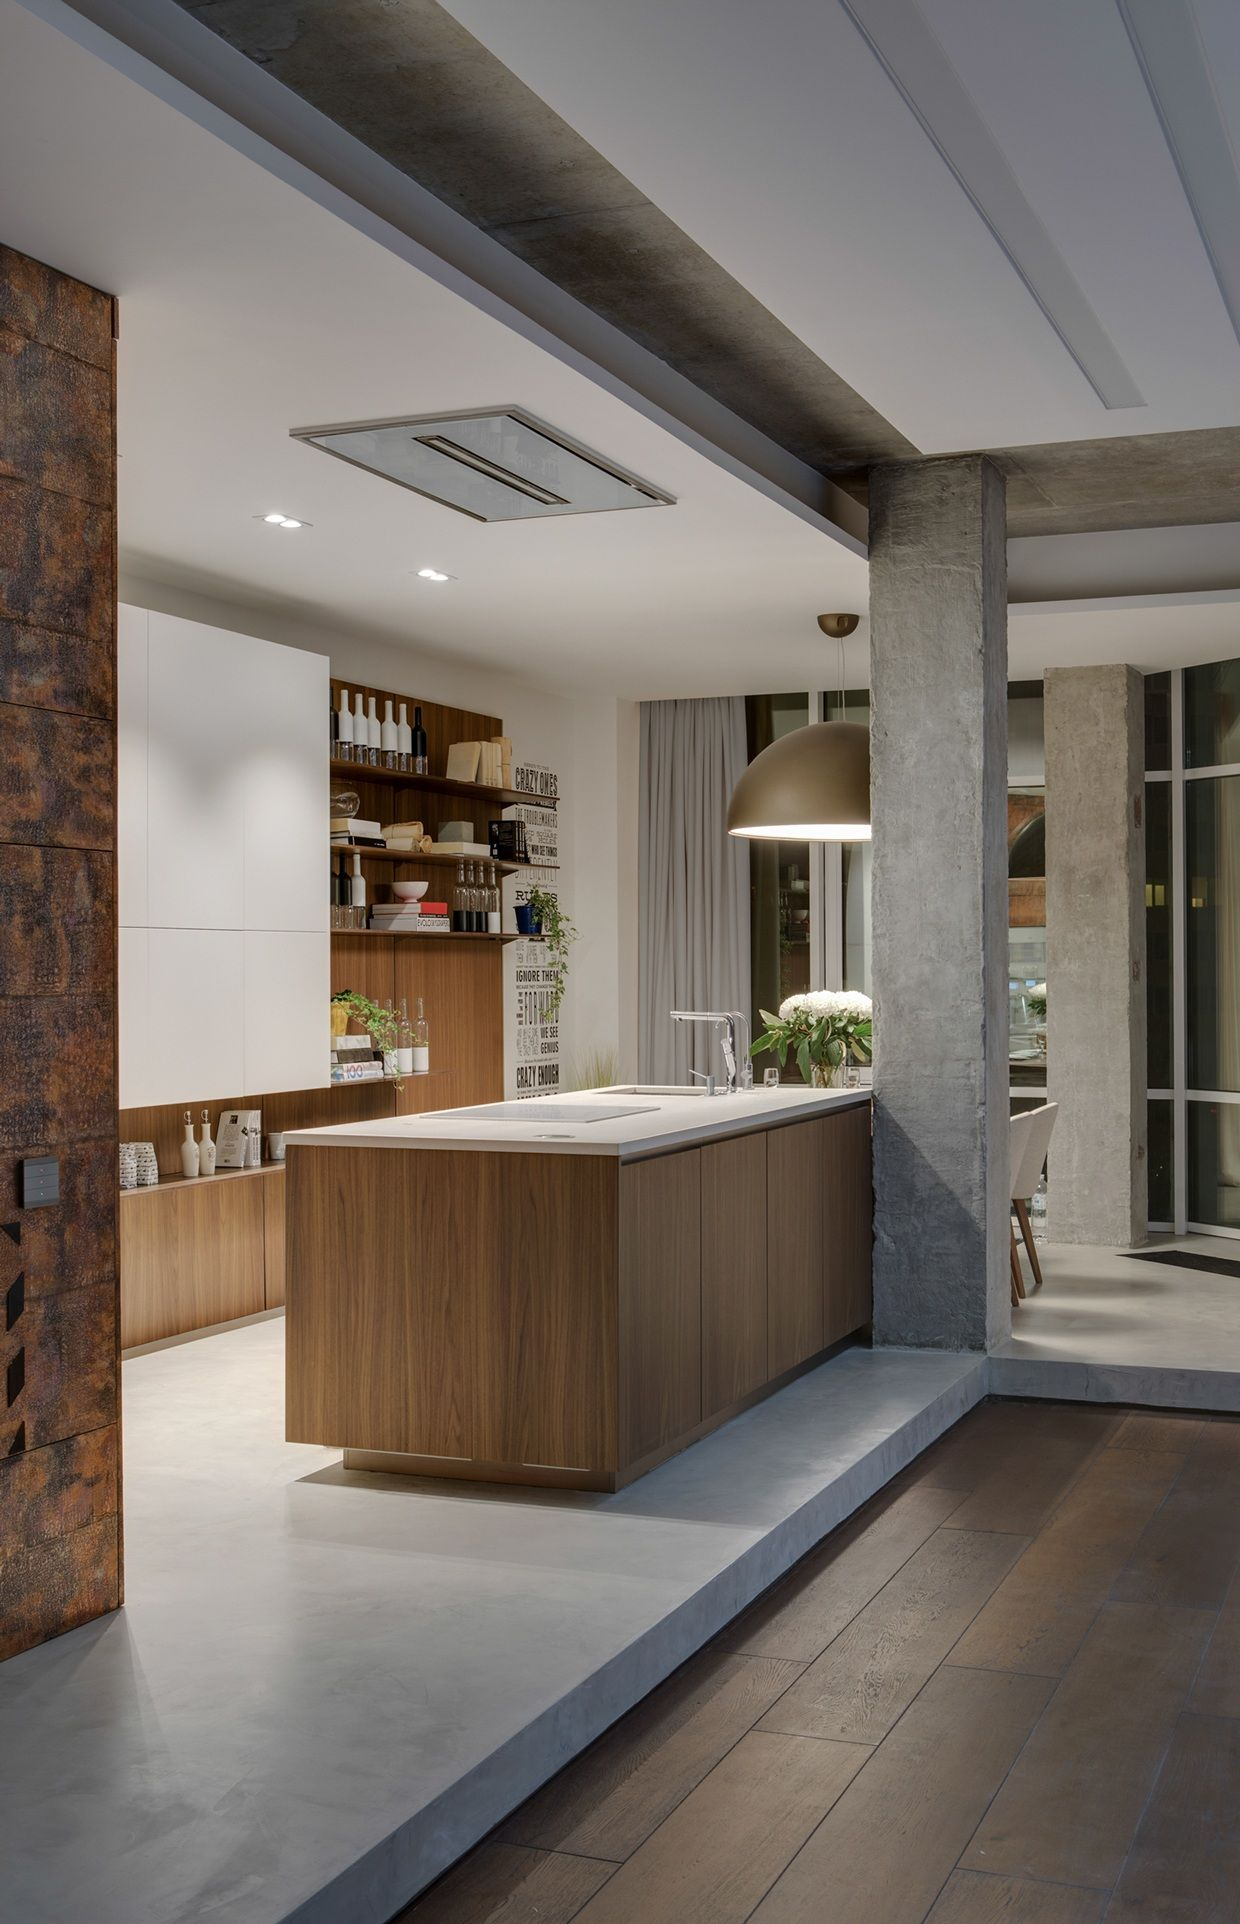 Pin by marcela karola on cocinas pinterest openness apartments